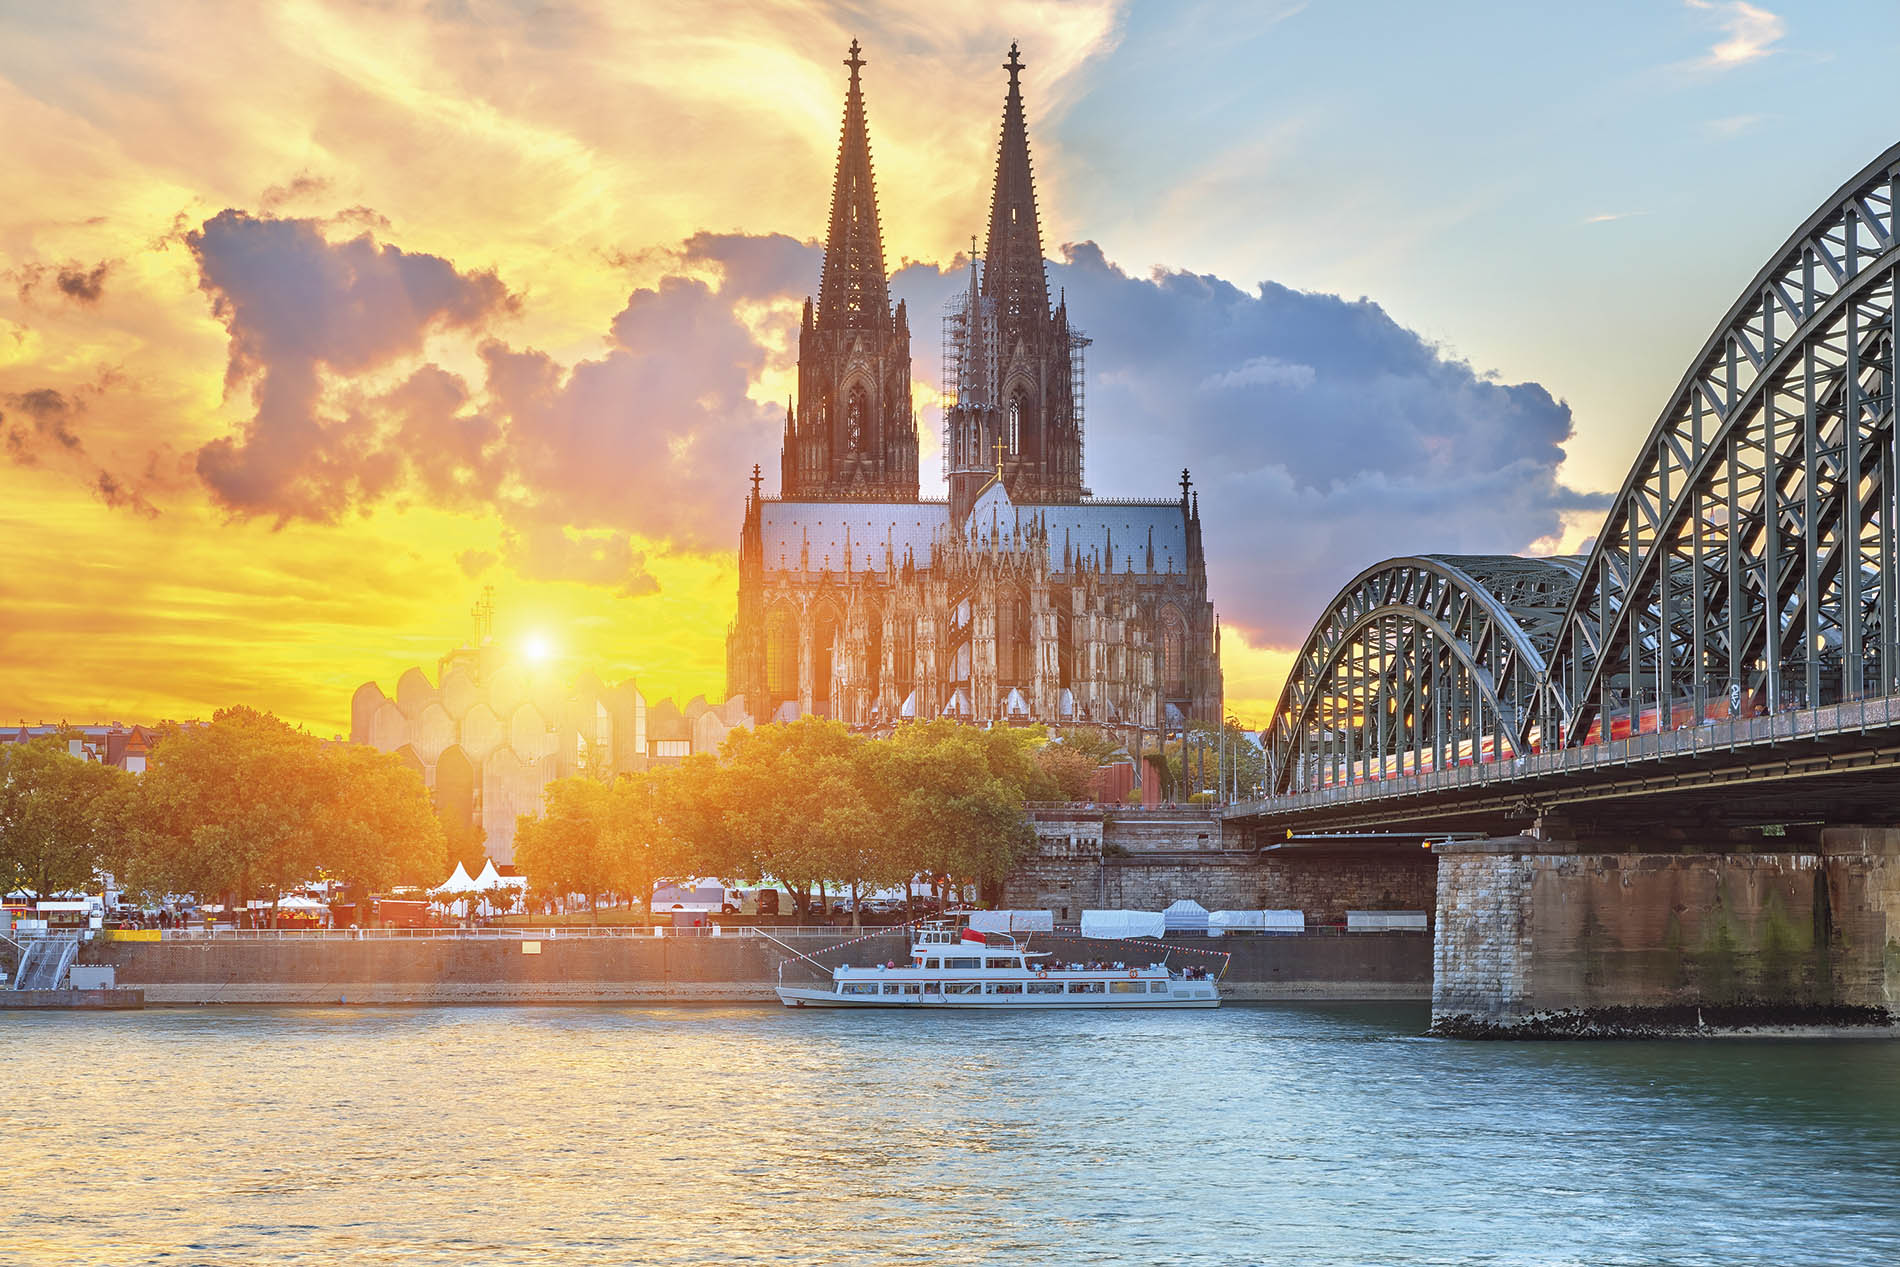 a large bridge over a body of water with Cologne Cathedral in the background